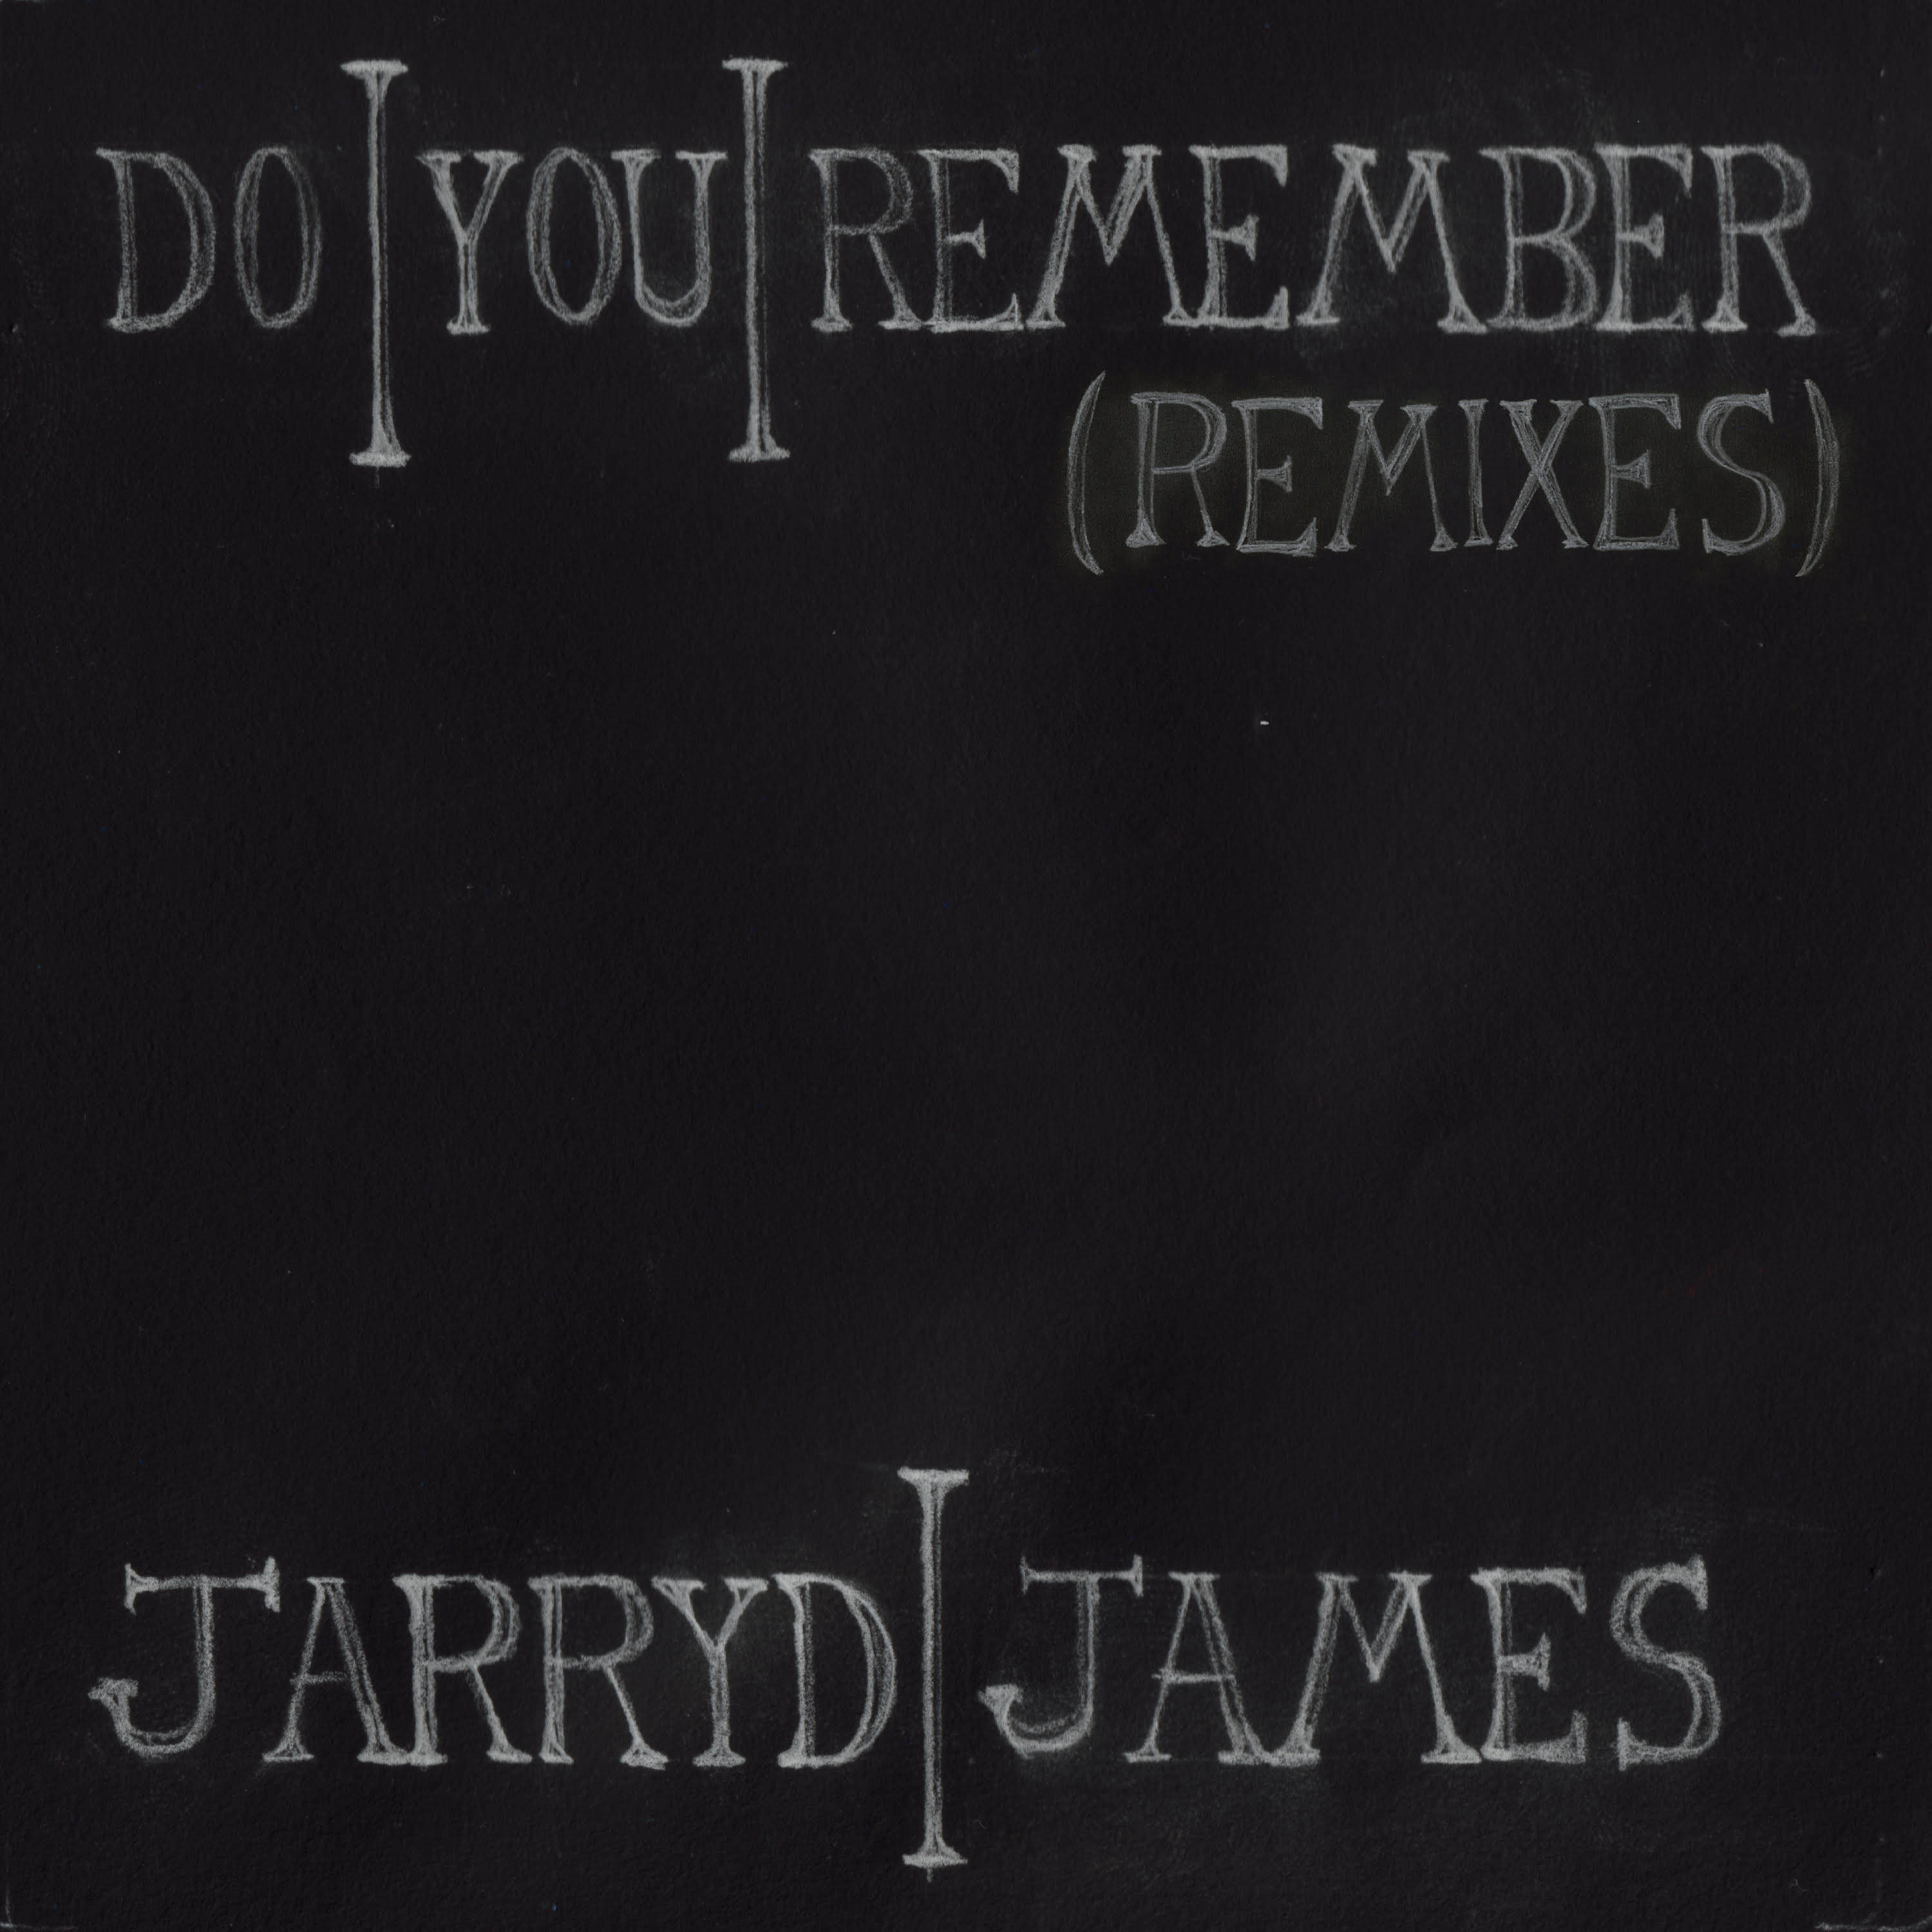 Jarryd james do you remember (hairy lime remix) [lyrics] youtube.